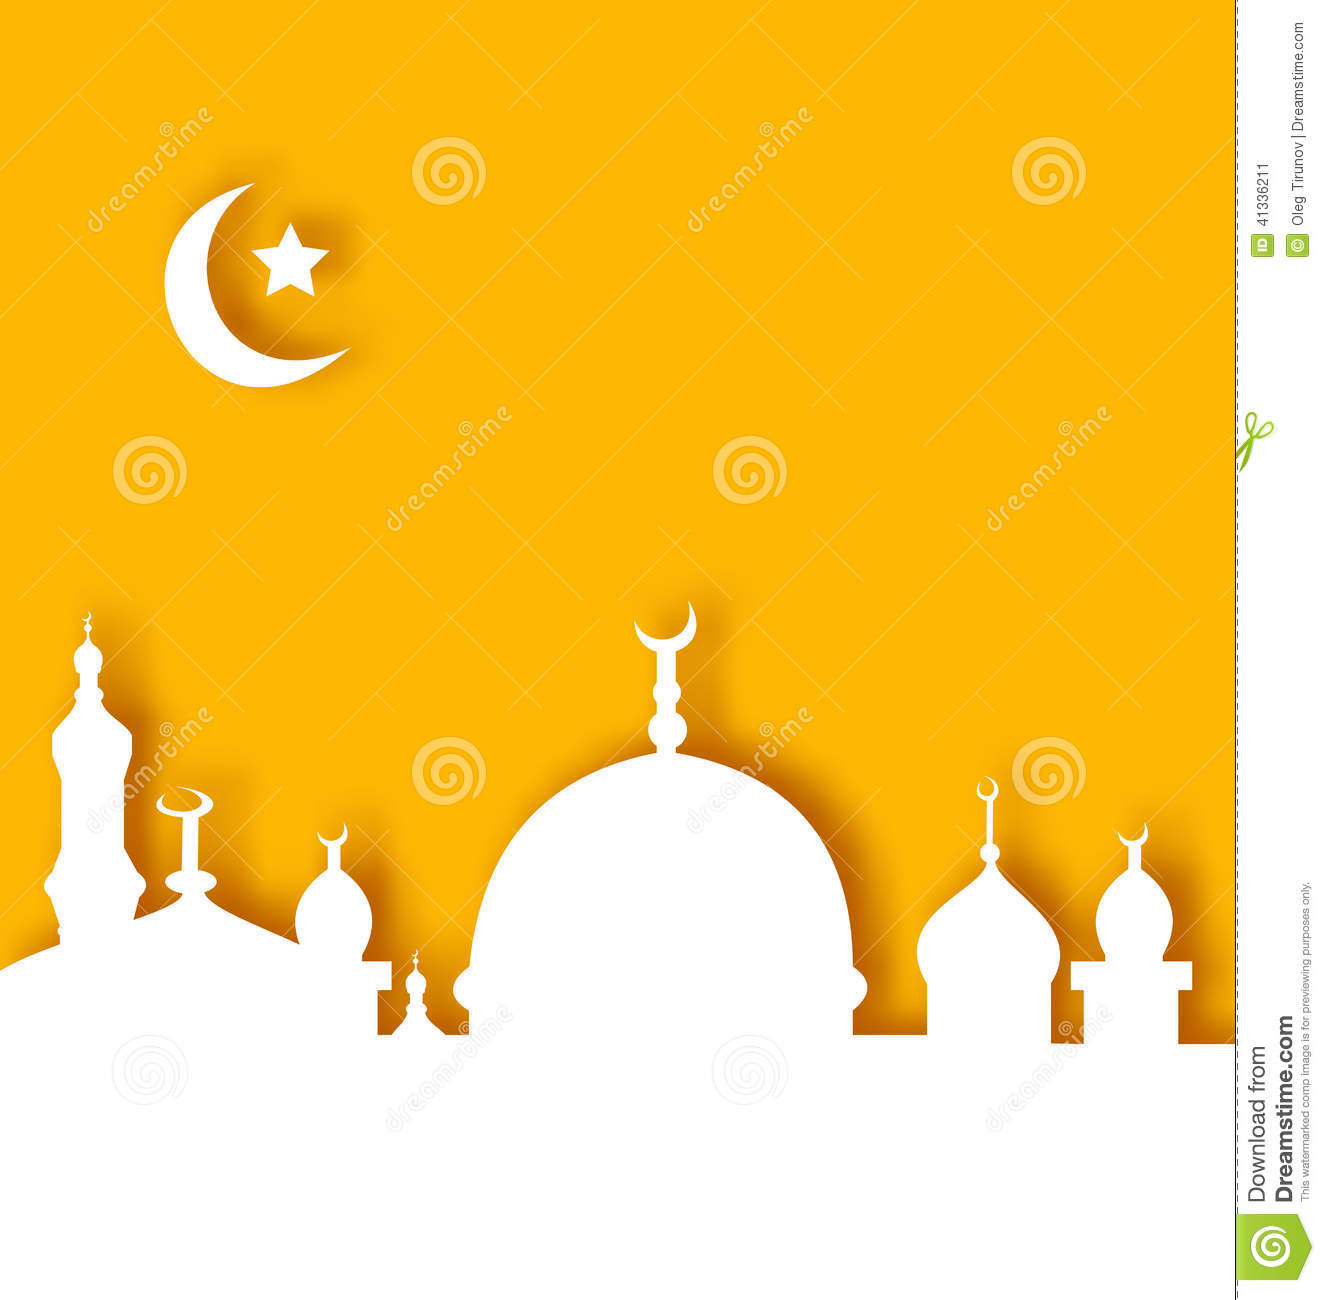 Hd wallpaper ramadhan - Islamic Architecture Background Ramadan Kareem Stock